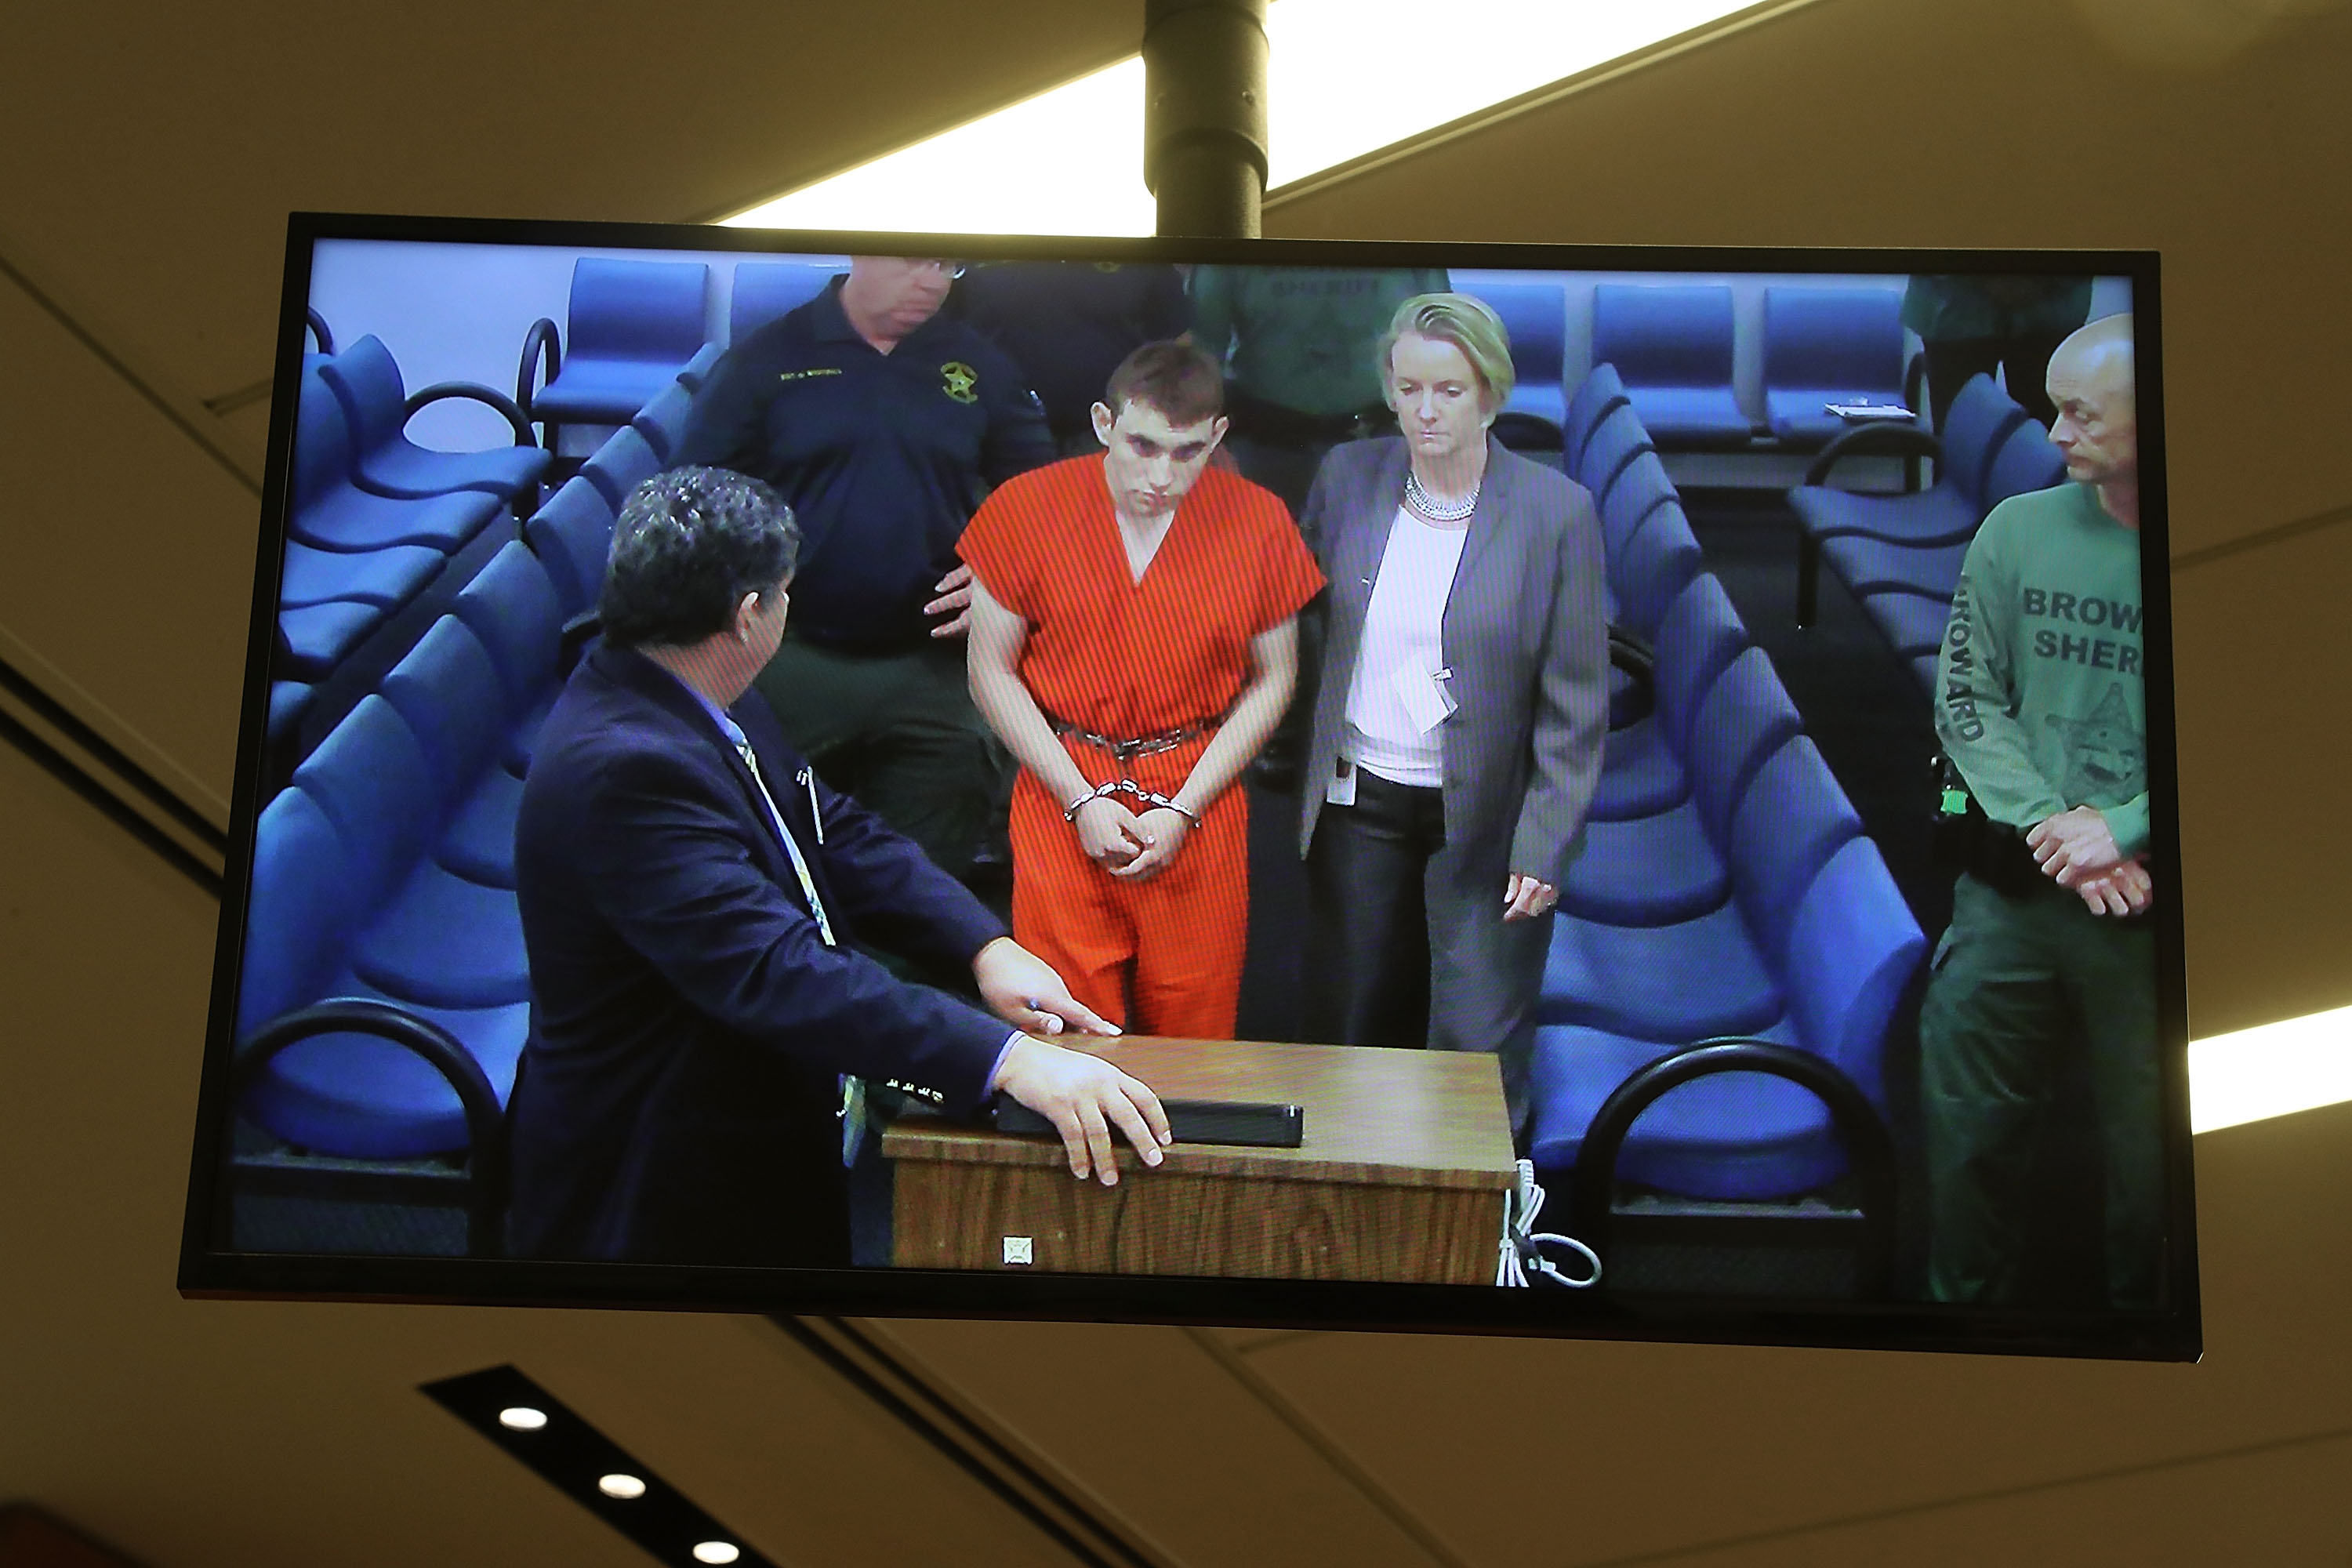 FORT LAUDERDALE, FL - FEB. 15: Nikolas Cruz, 19, a former student at Marjory Stoneman Douglas High School in Parkland, Fla., where he allegedly killed 17 people, is seen on a closed circuit television screen during a bond hearing. (Photo by Susan Stocker - Pool/Getty Images)